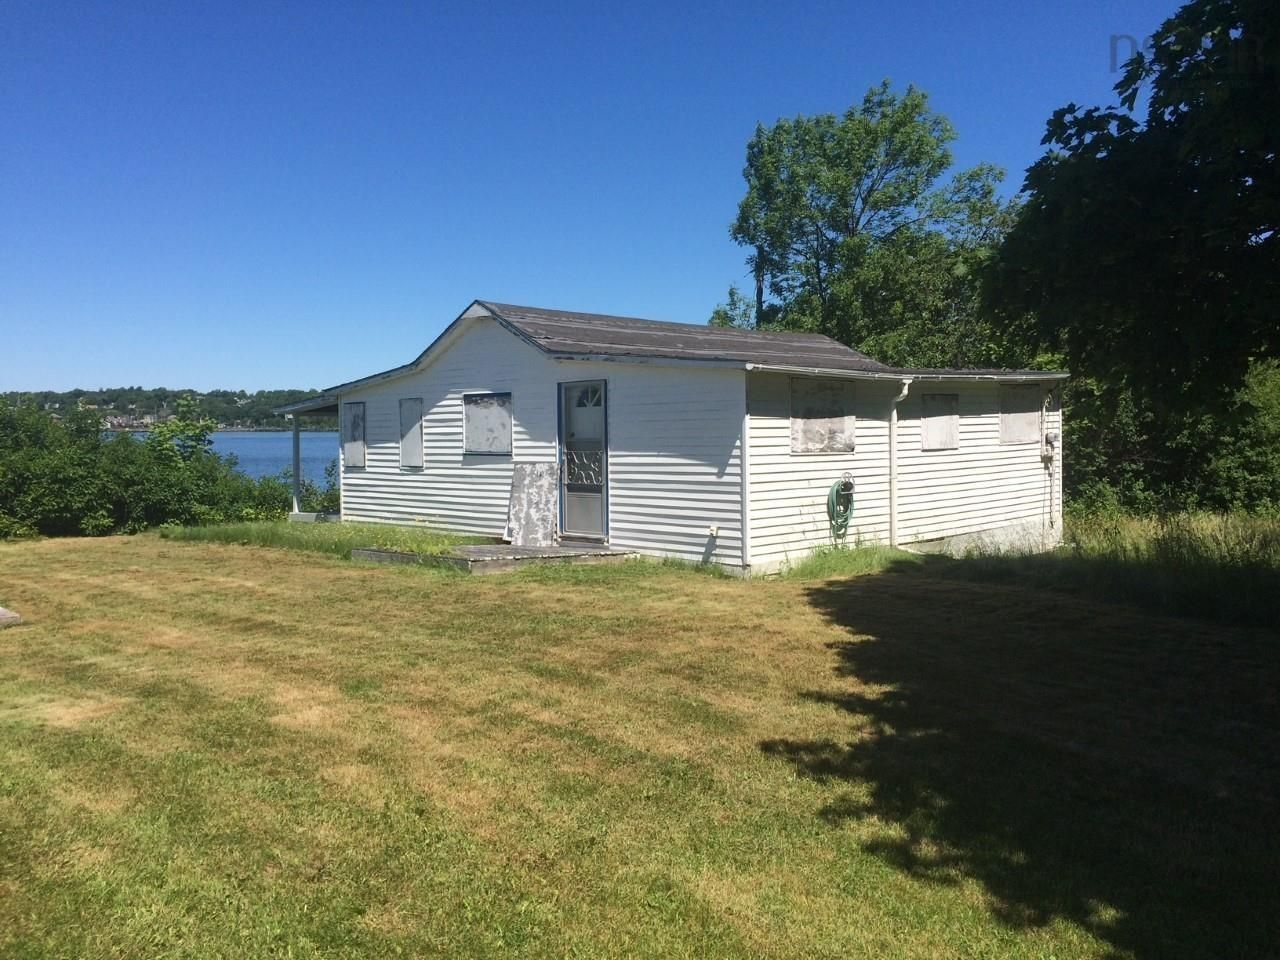 Main Photo: 19 Fairview Lane in Pictou Landing: 108-Rural Pictou County Residential for sale (Northern Region)  : MLS®# 202125523